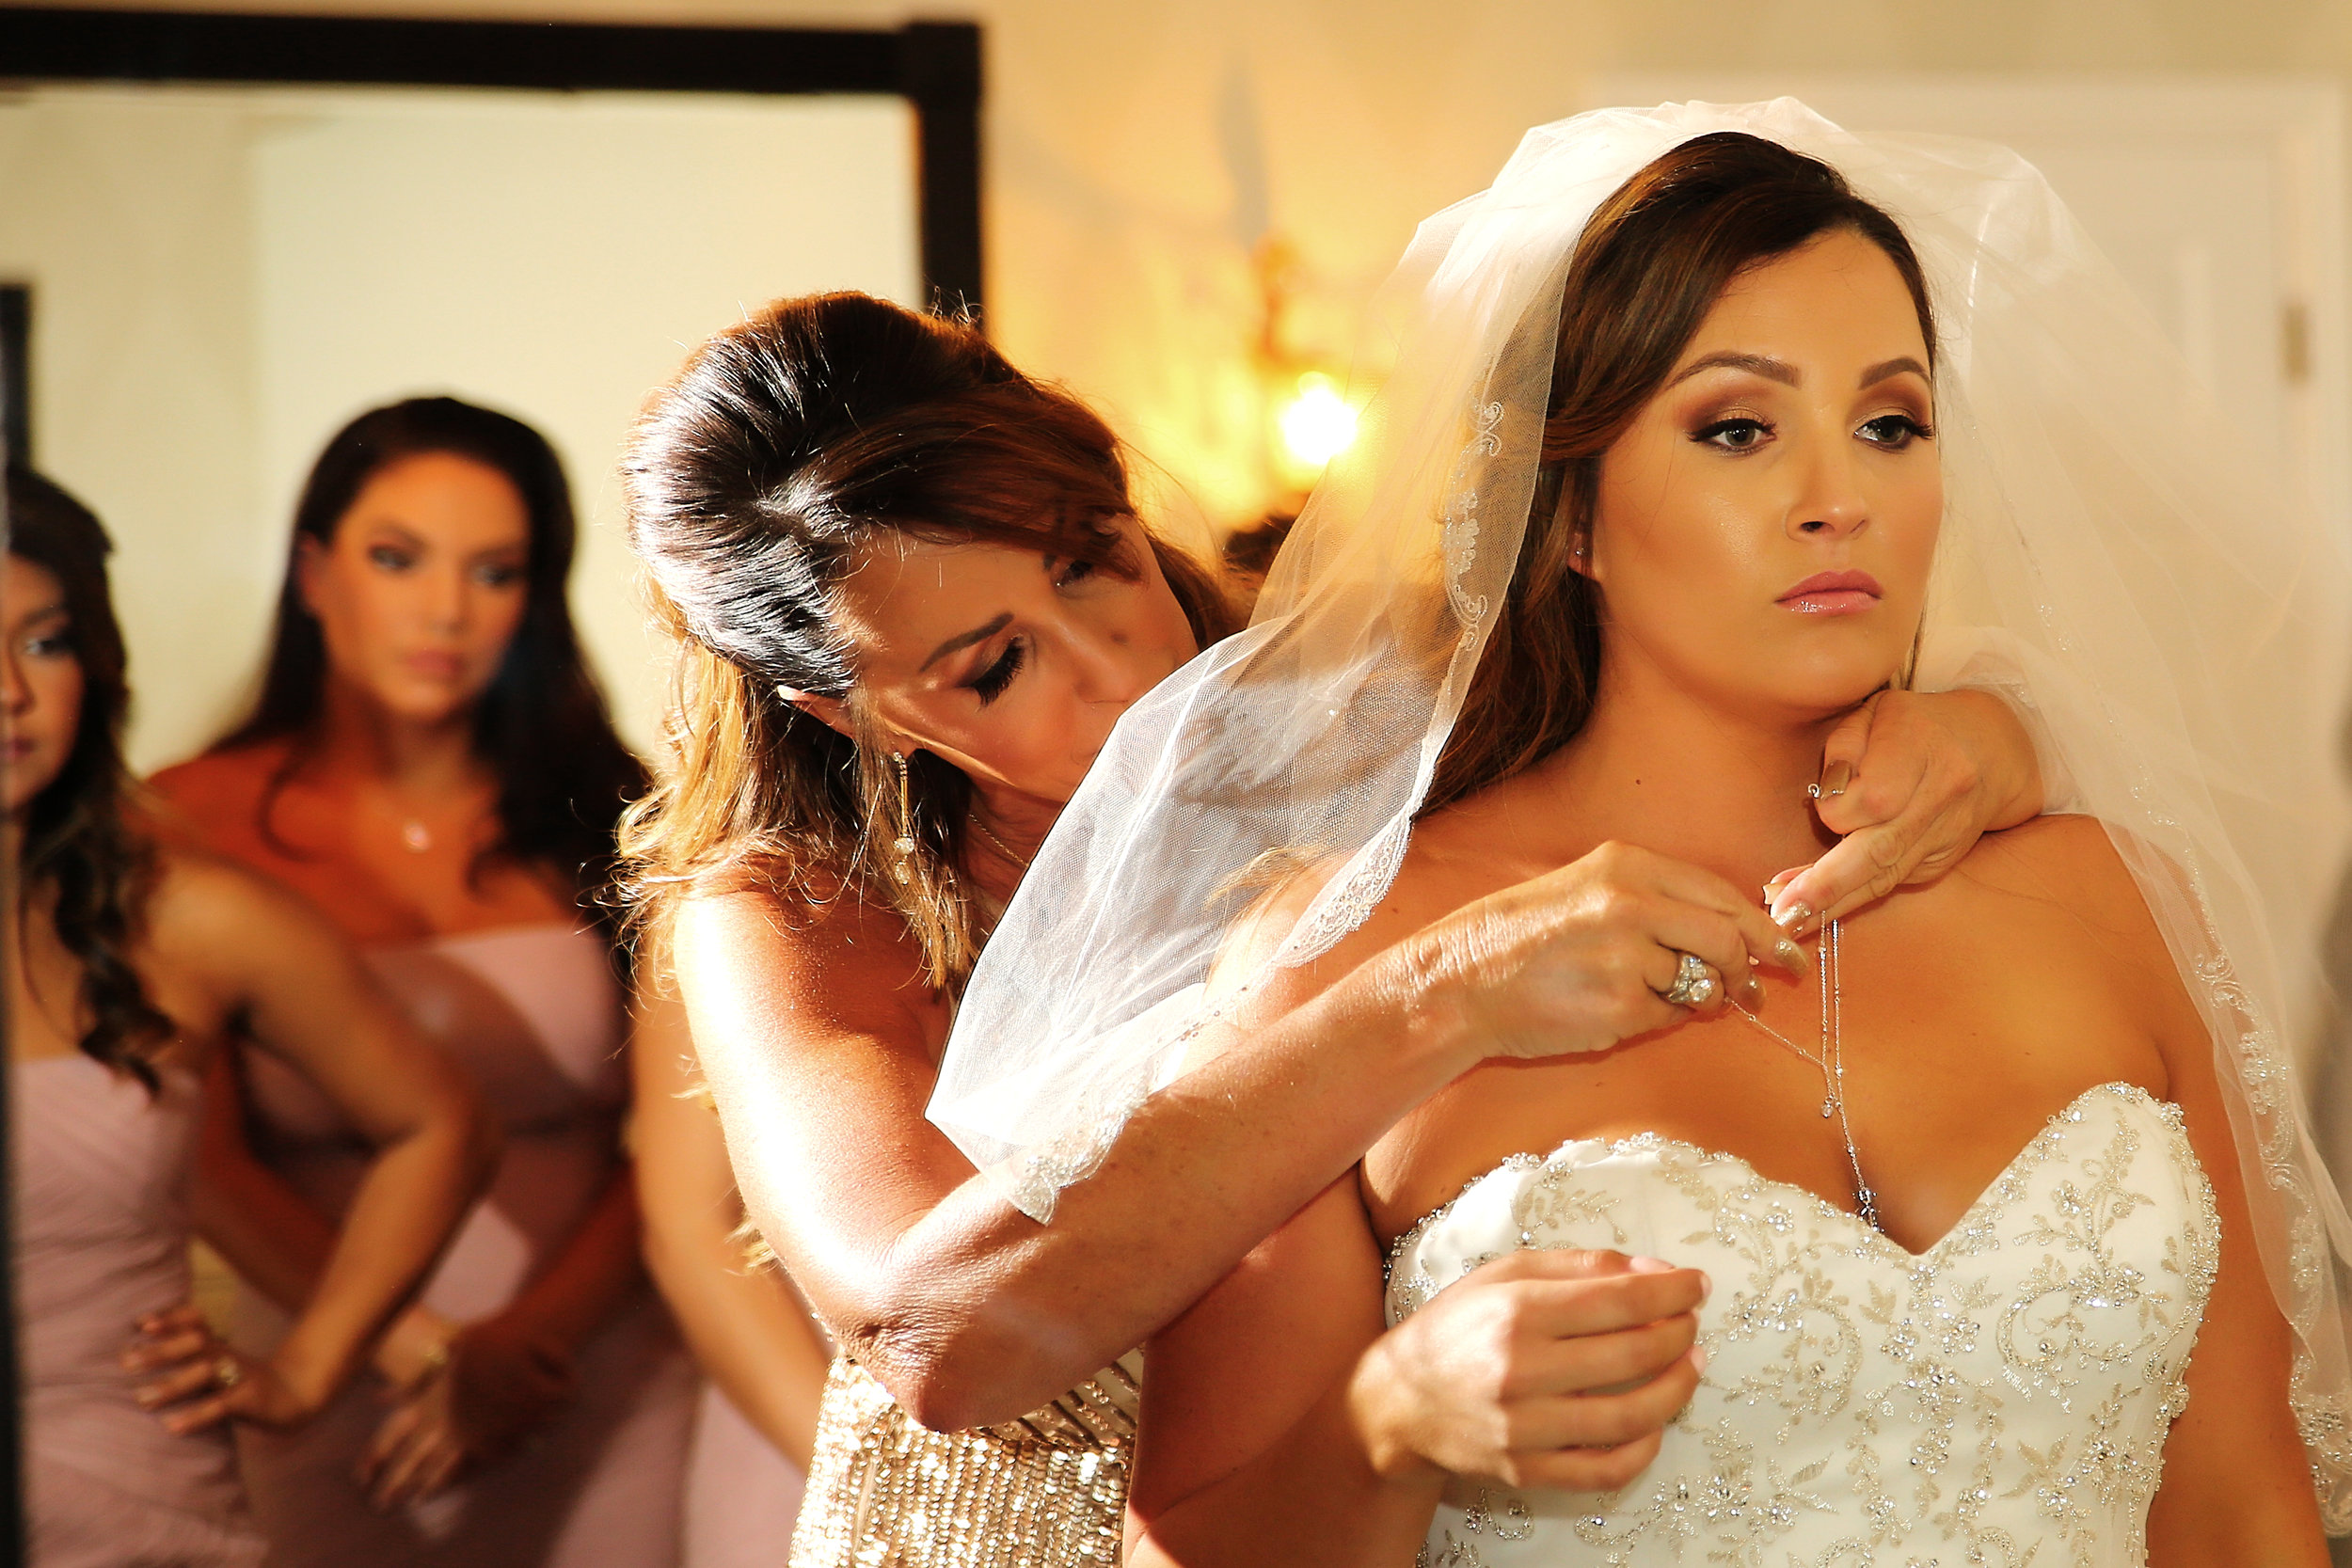 ShadowcatcherGalleryOne_SanDiegoWeddingPhotogrpaher_101.JPG